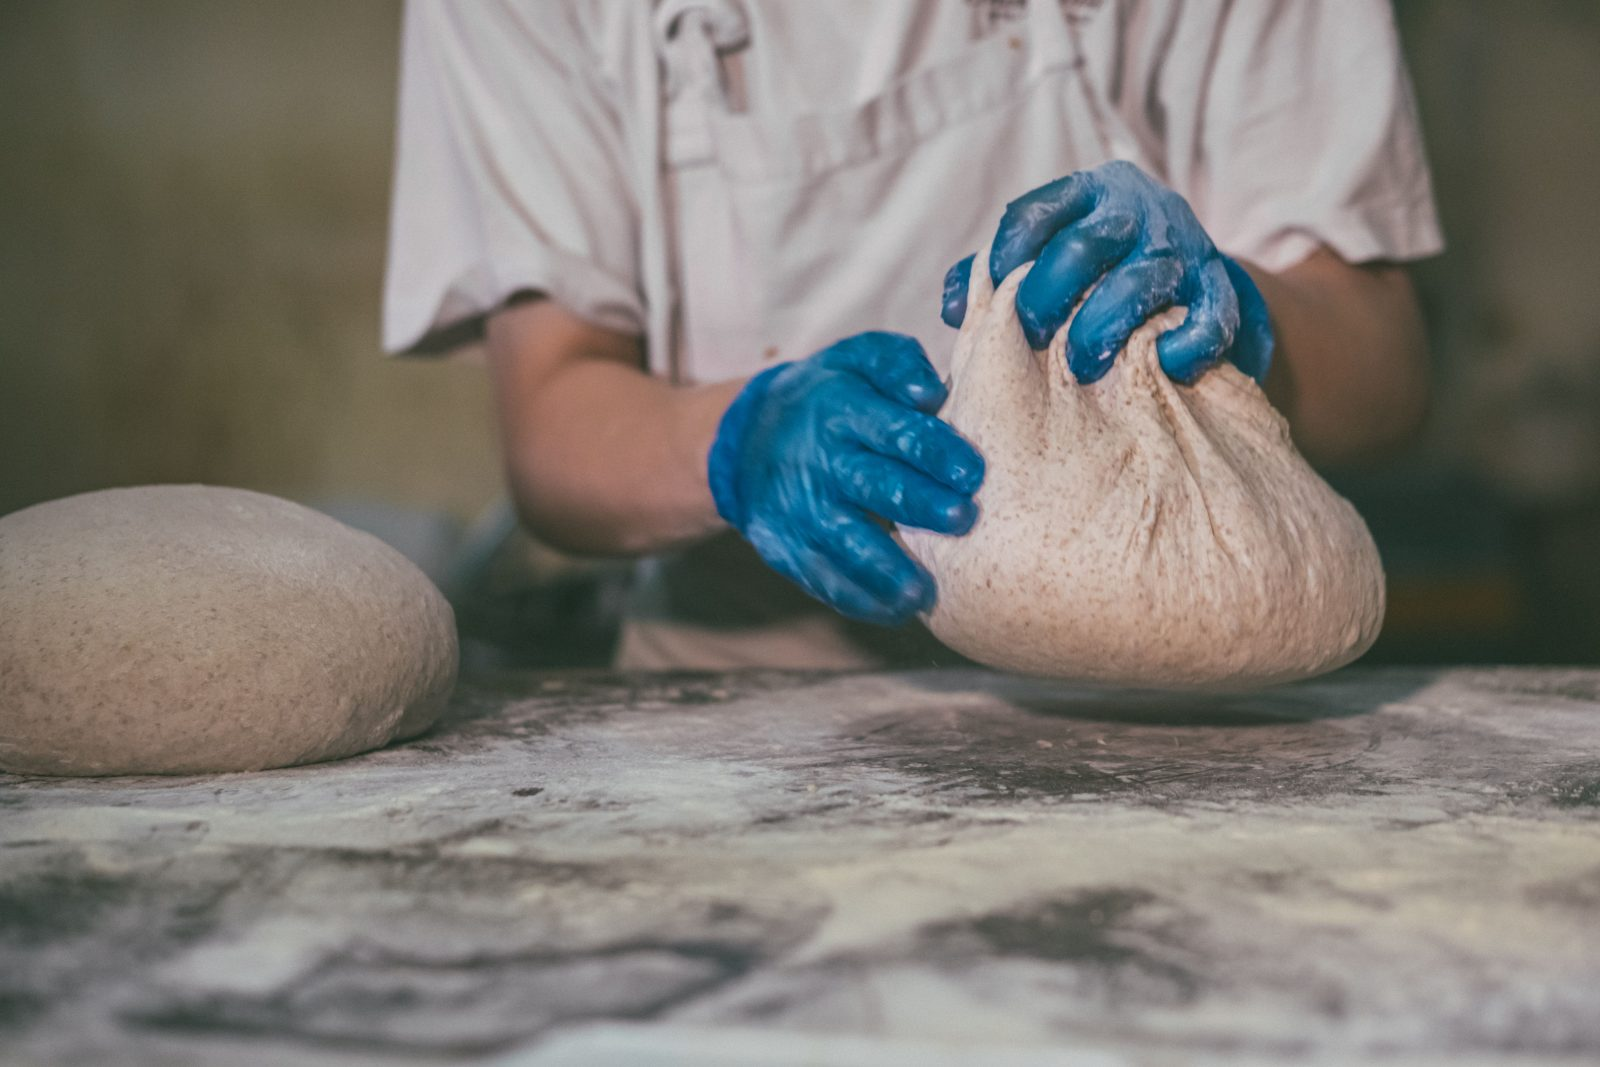 Kneading and shaping dough may appear deceptively simple, but it's no piece of cake: Nick says it takes at least a year for an apprentice baker to become proficient in shaping and dividing dough.